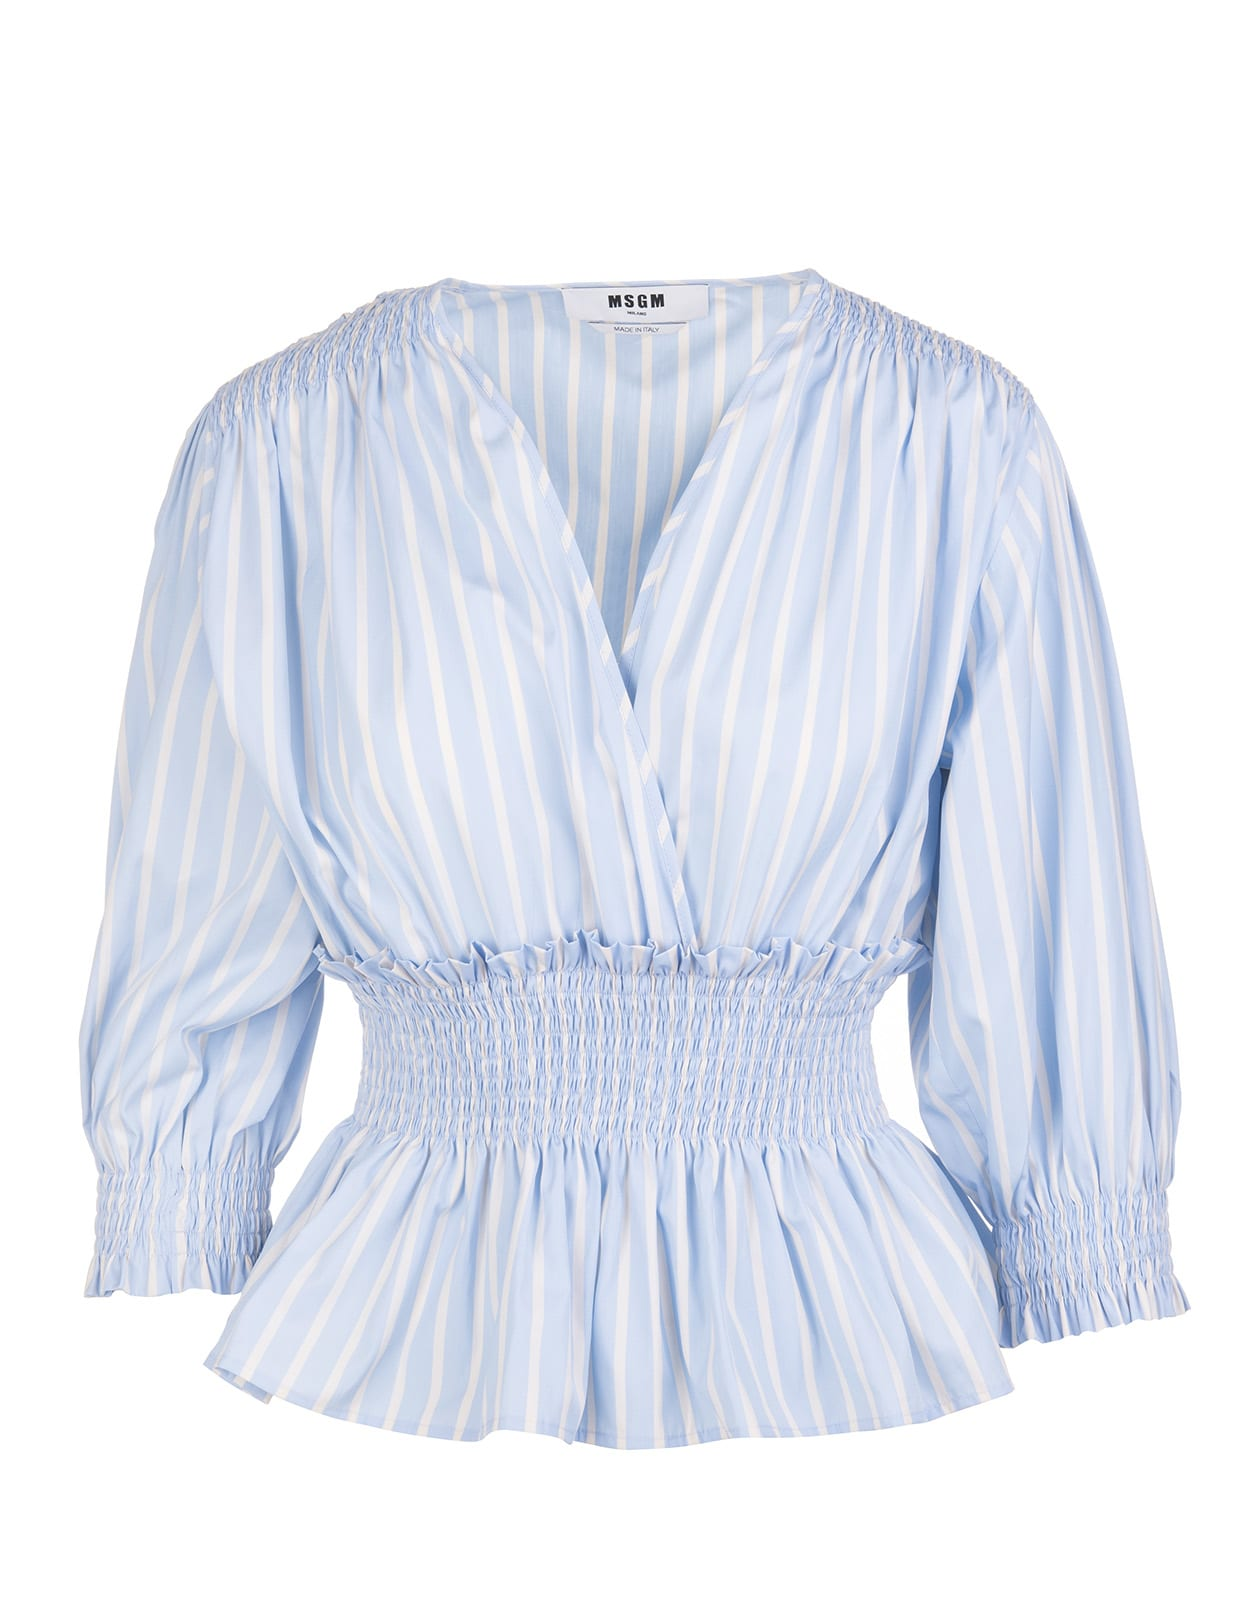 Msgm BLU STRIPED V-NECK PEPLUM BLOUSE